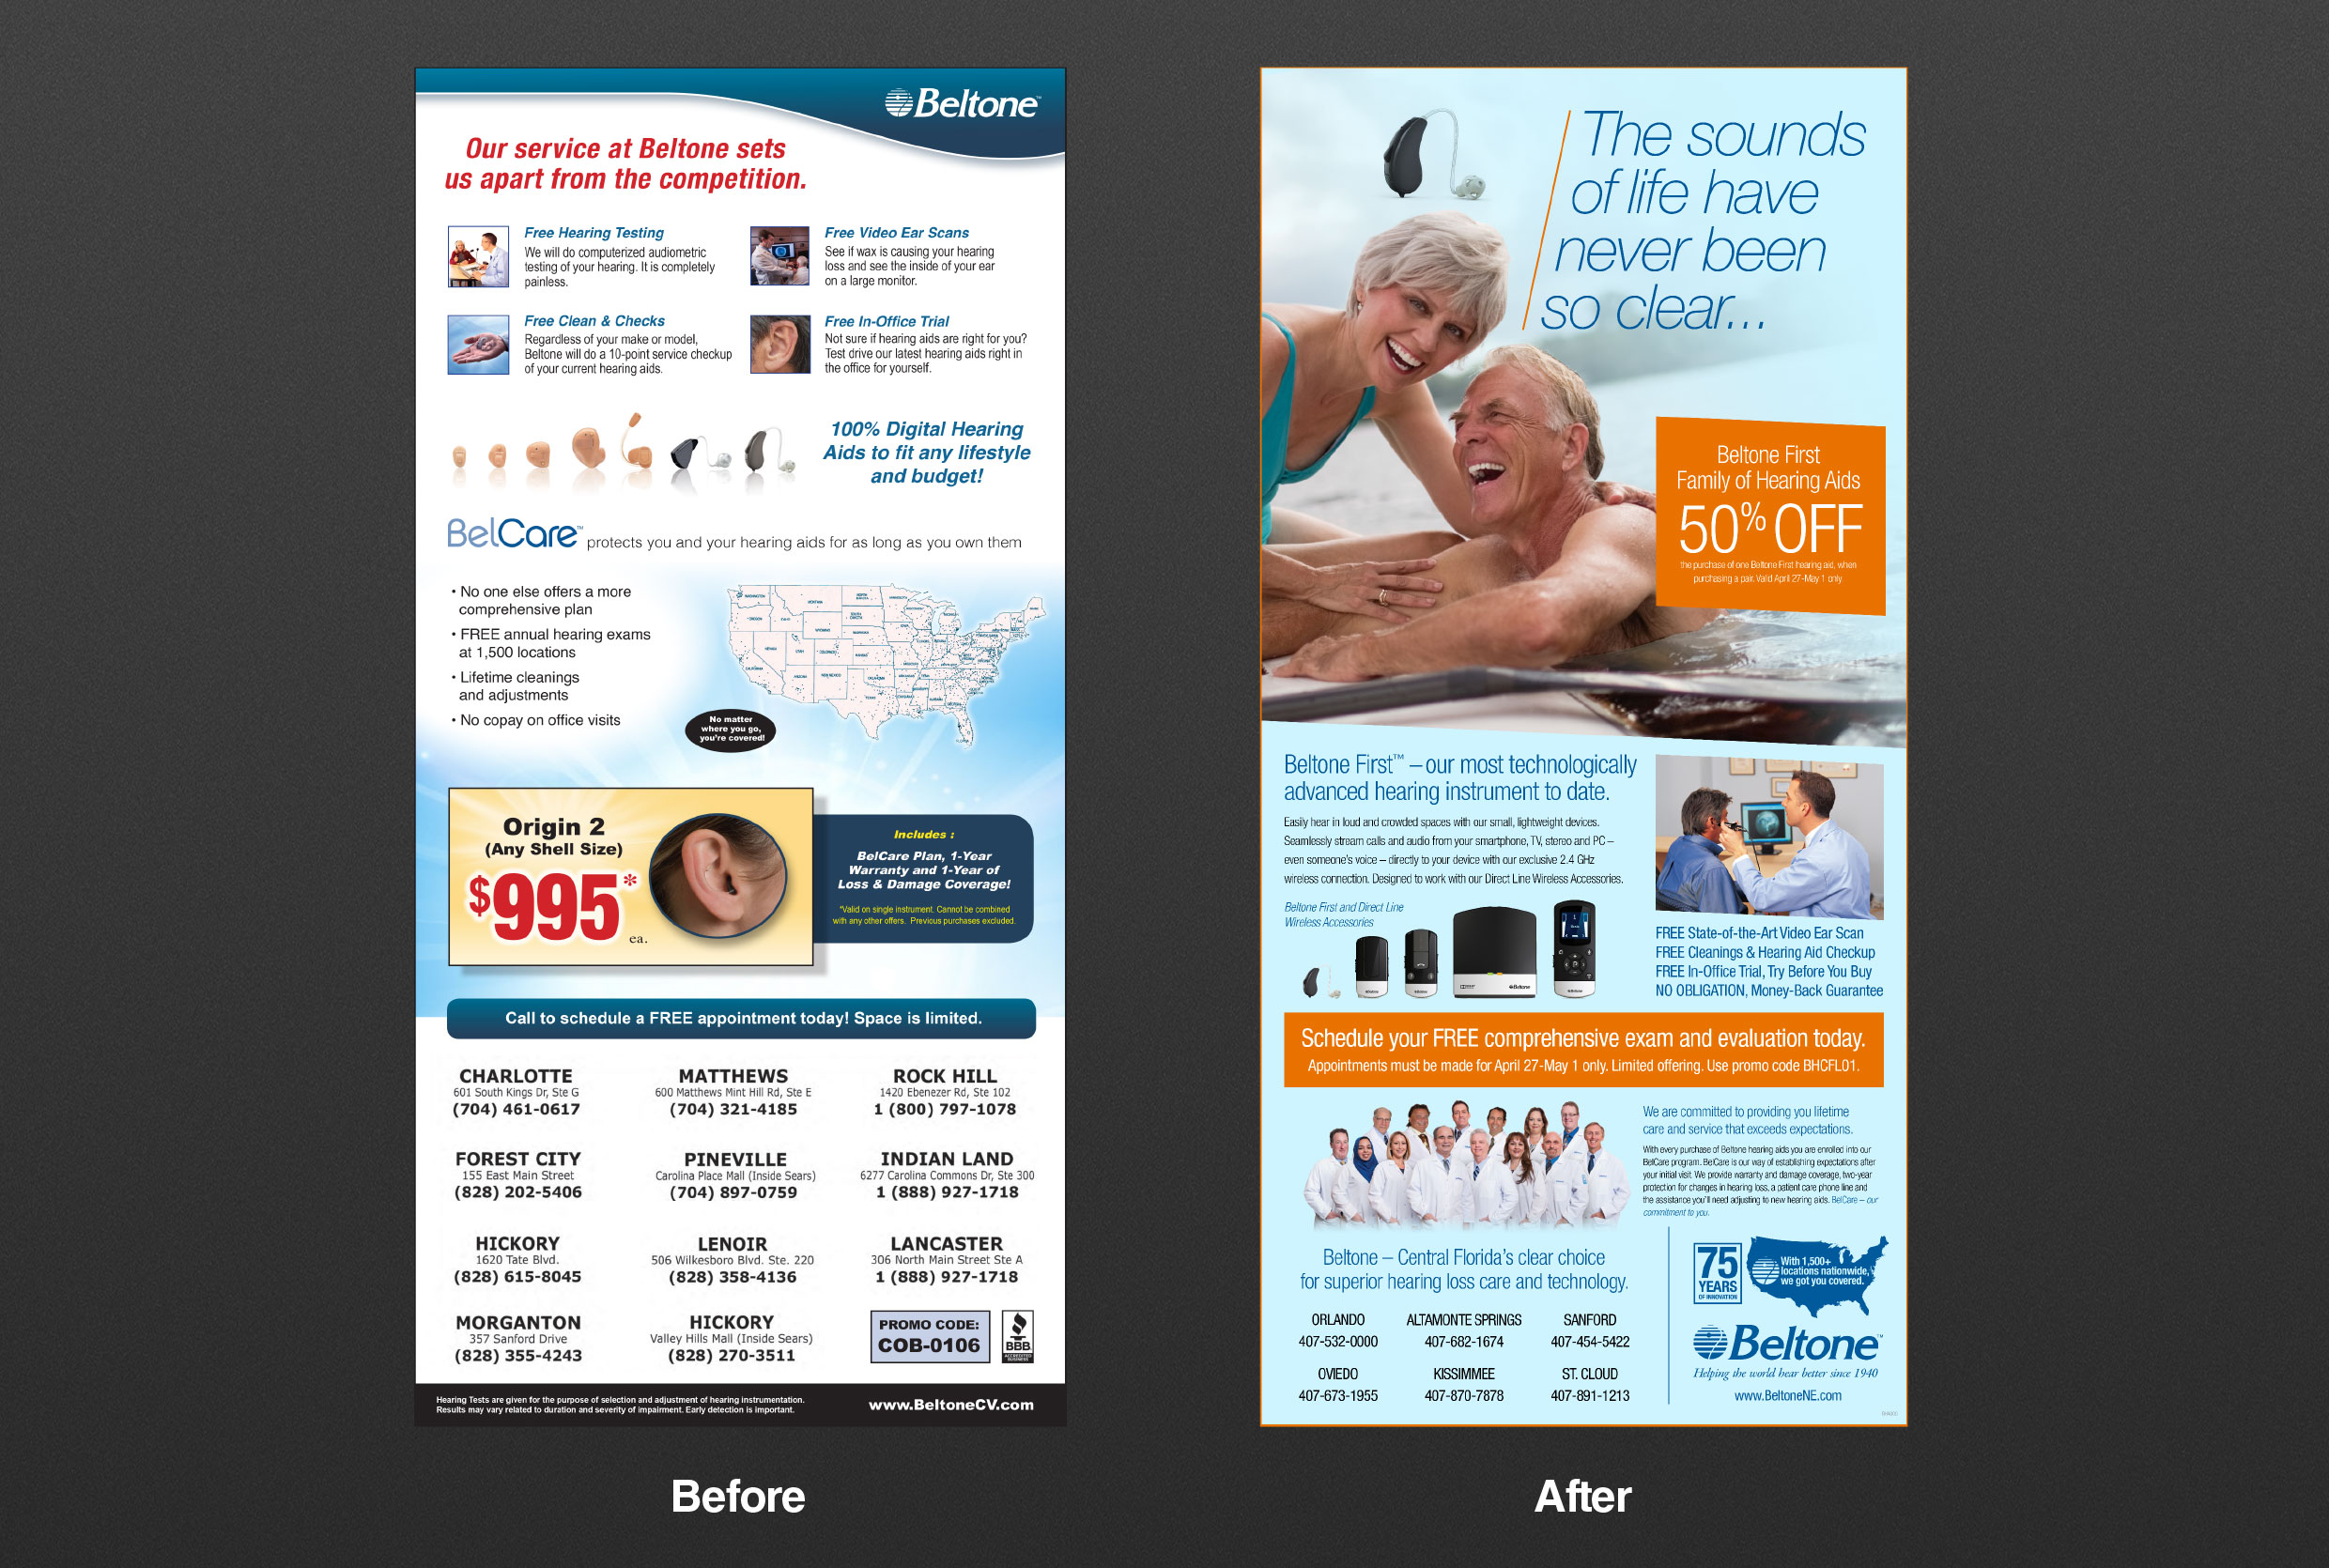 Beltone Before and After Print Ads